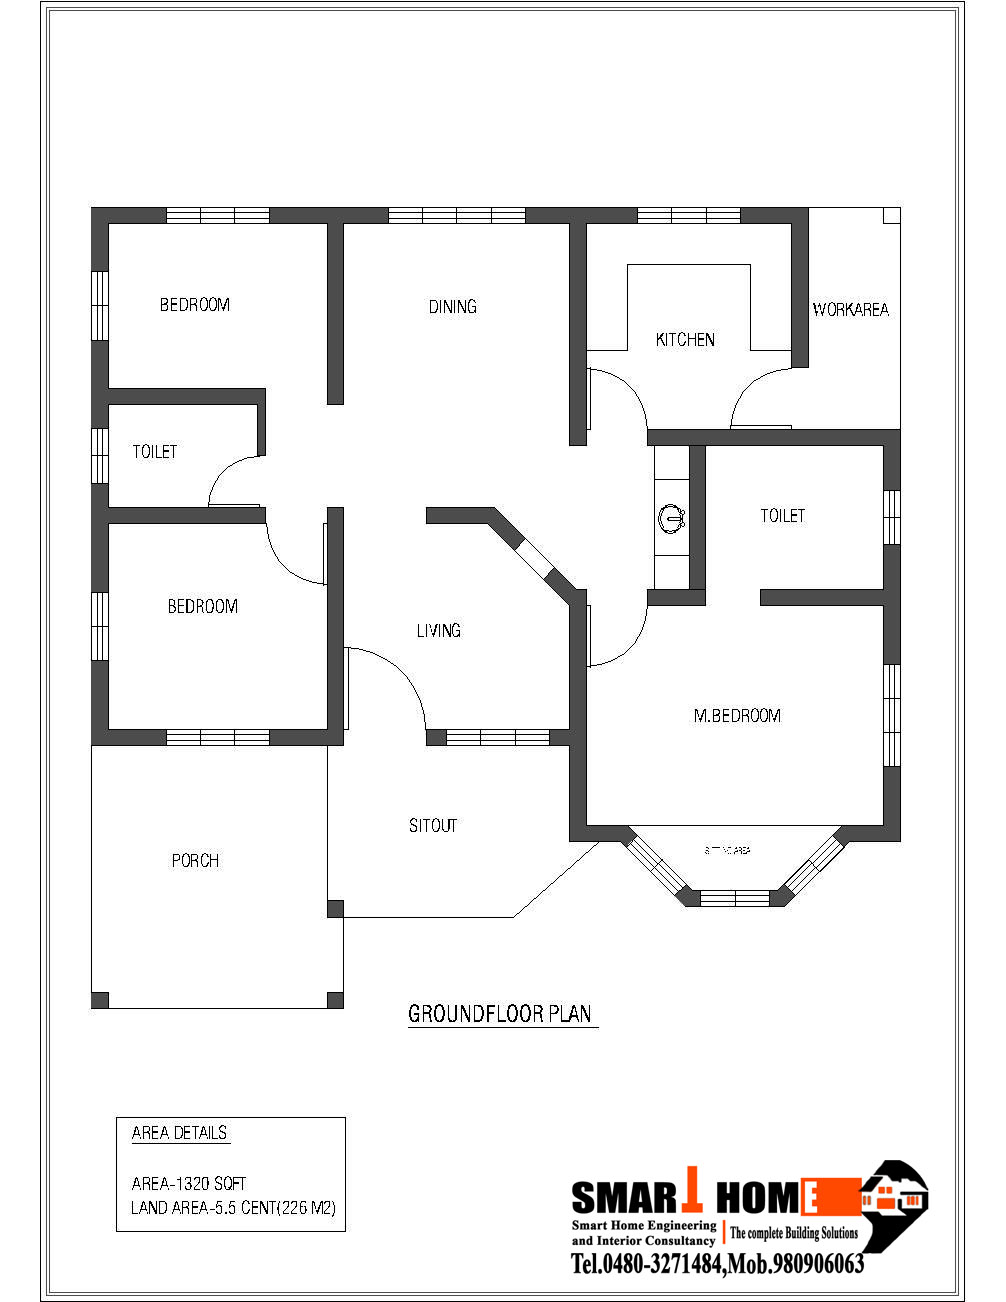 House photos and plans may 2012 House plans photo gallery